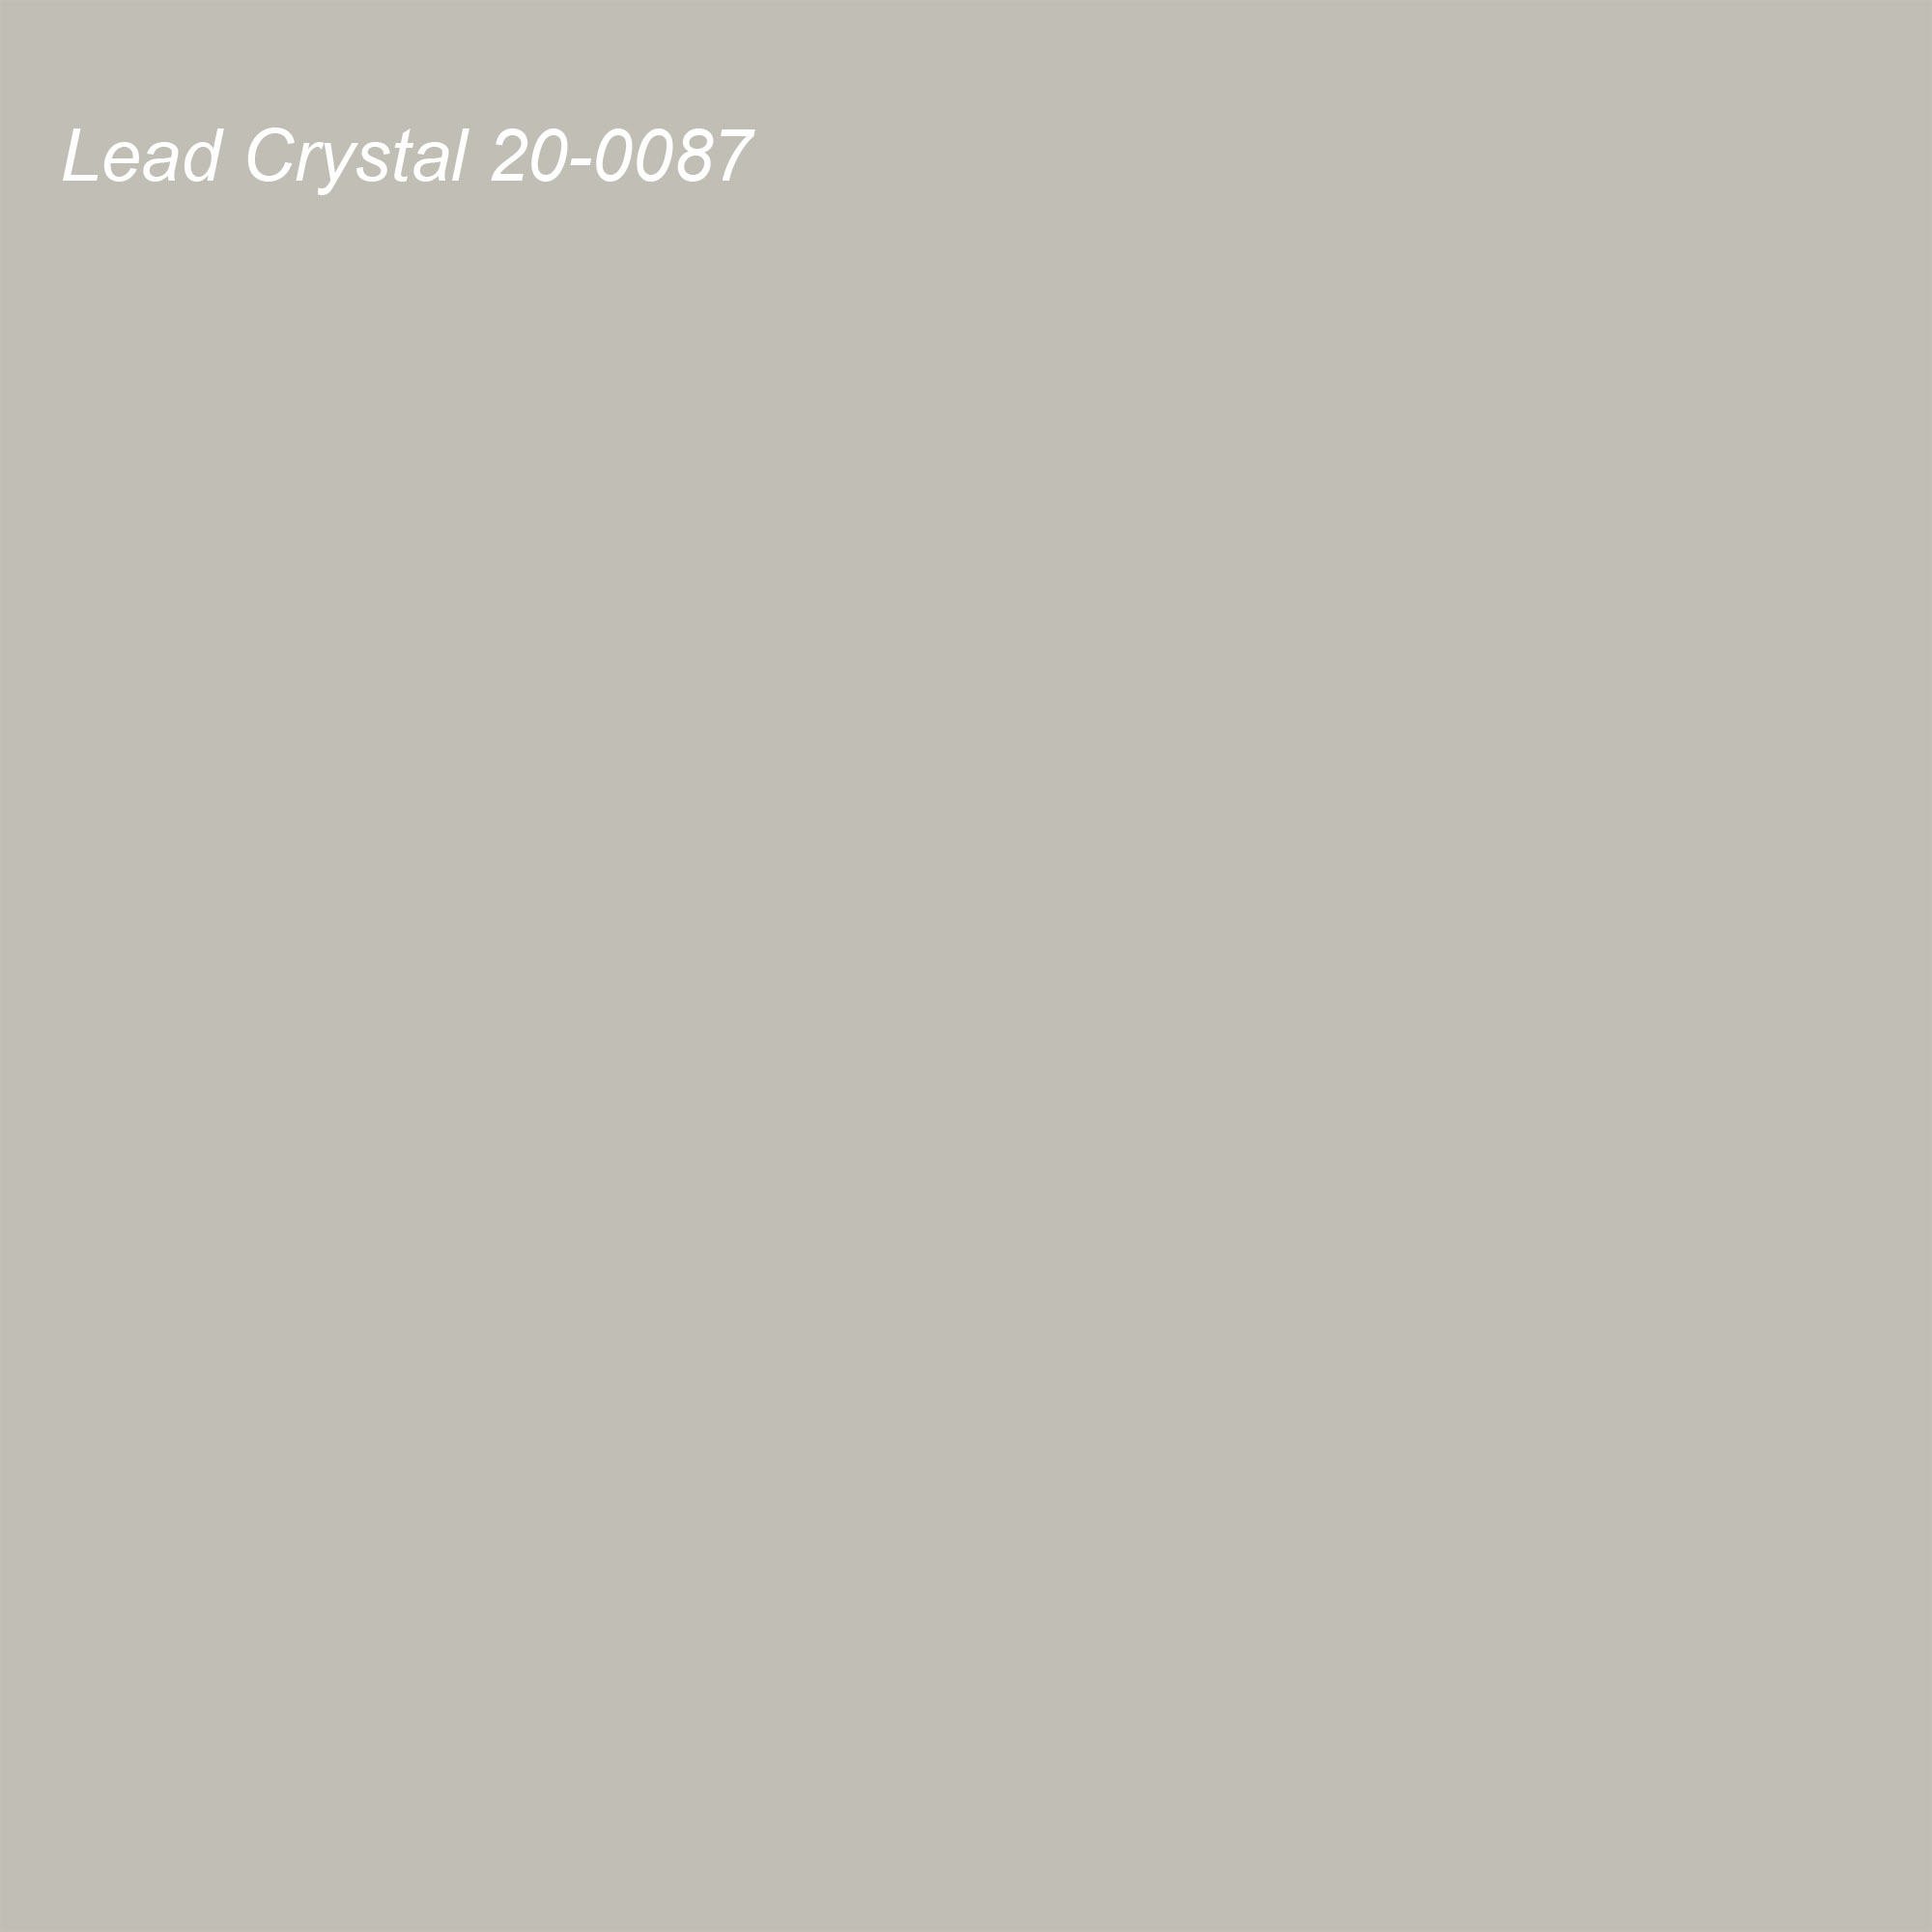 Pantone 2021 Color of the Year Suggested Accent Shade Lead Crystal 20-0087